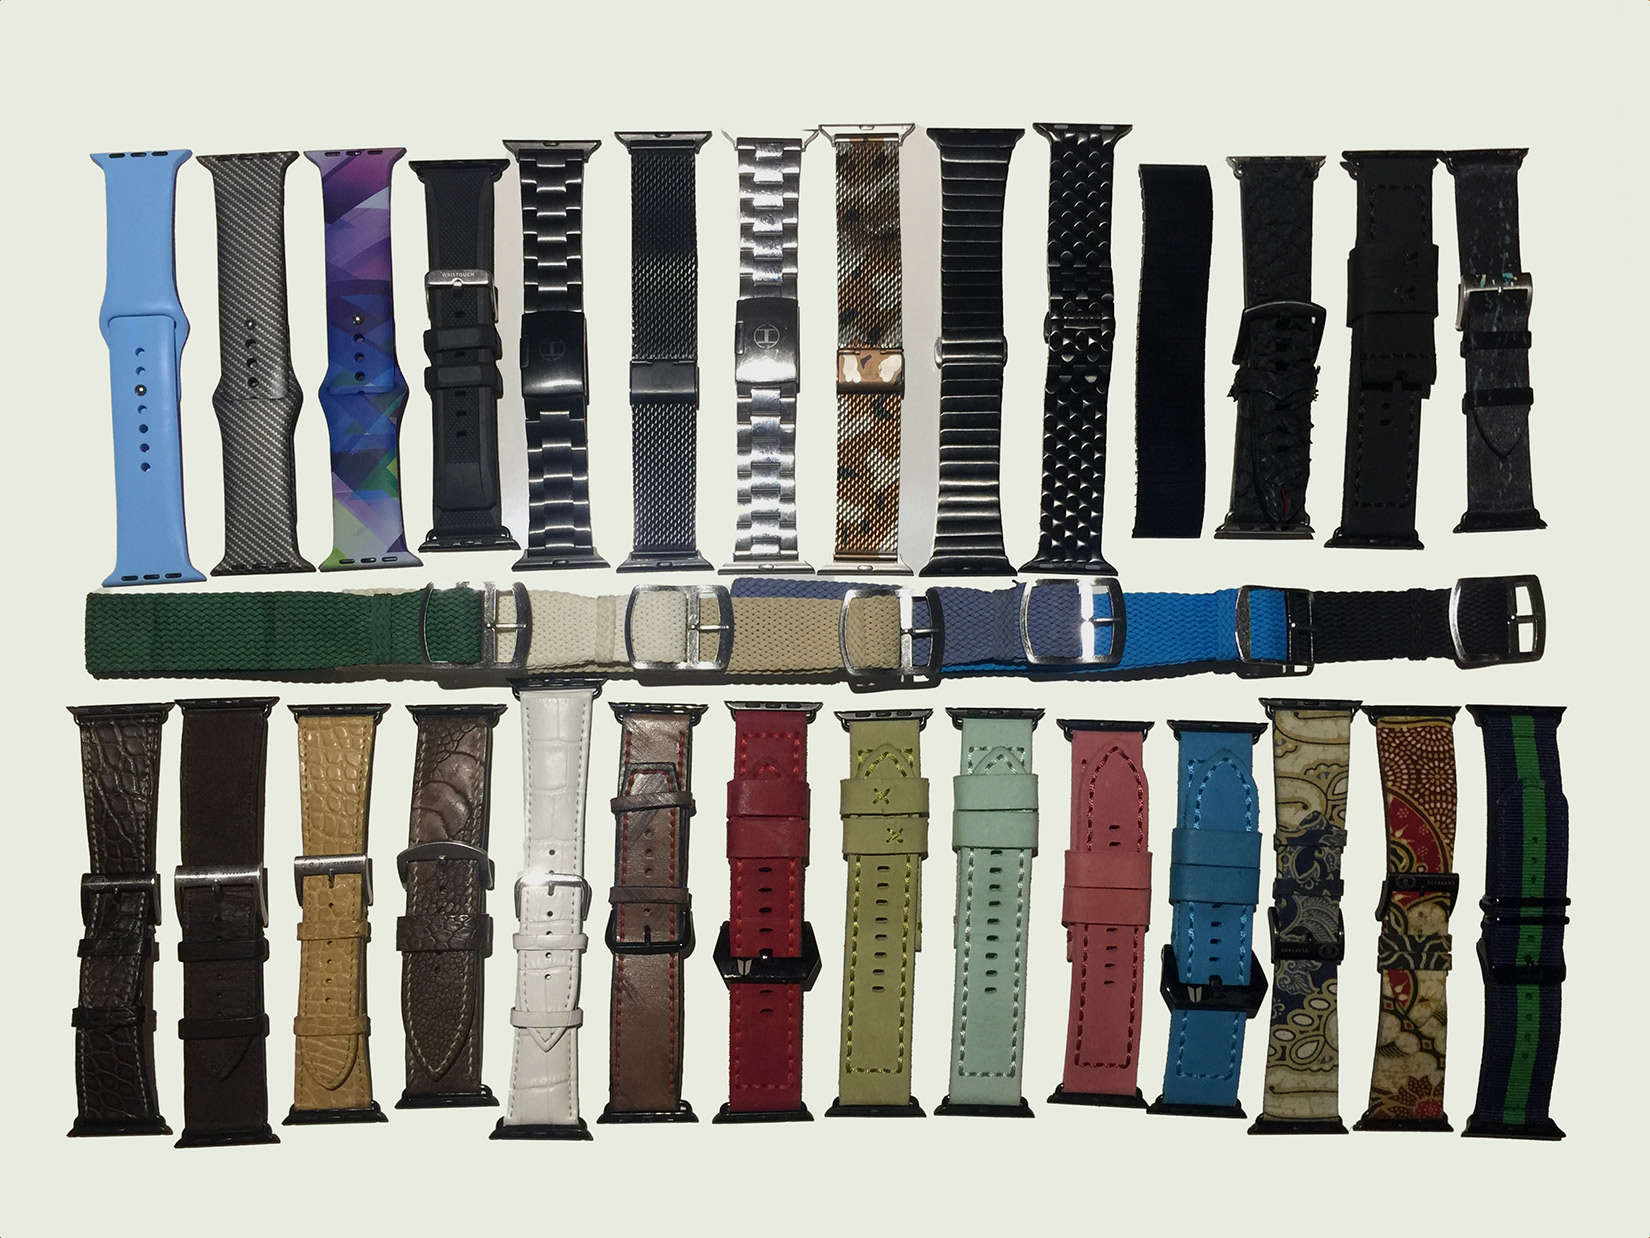 A sampling of Ryan Verbeek's ever-growing Apple Watch band collection.